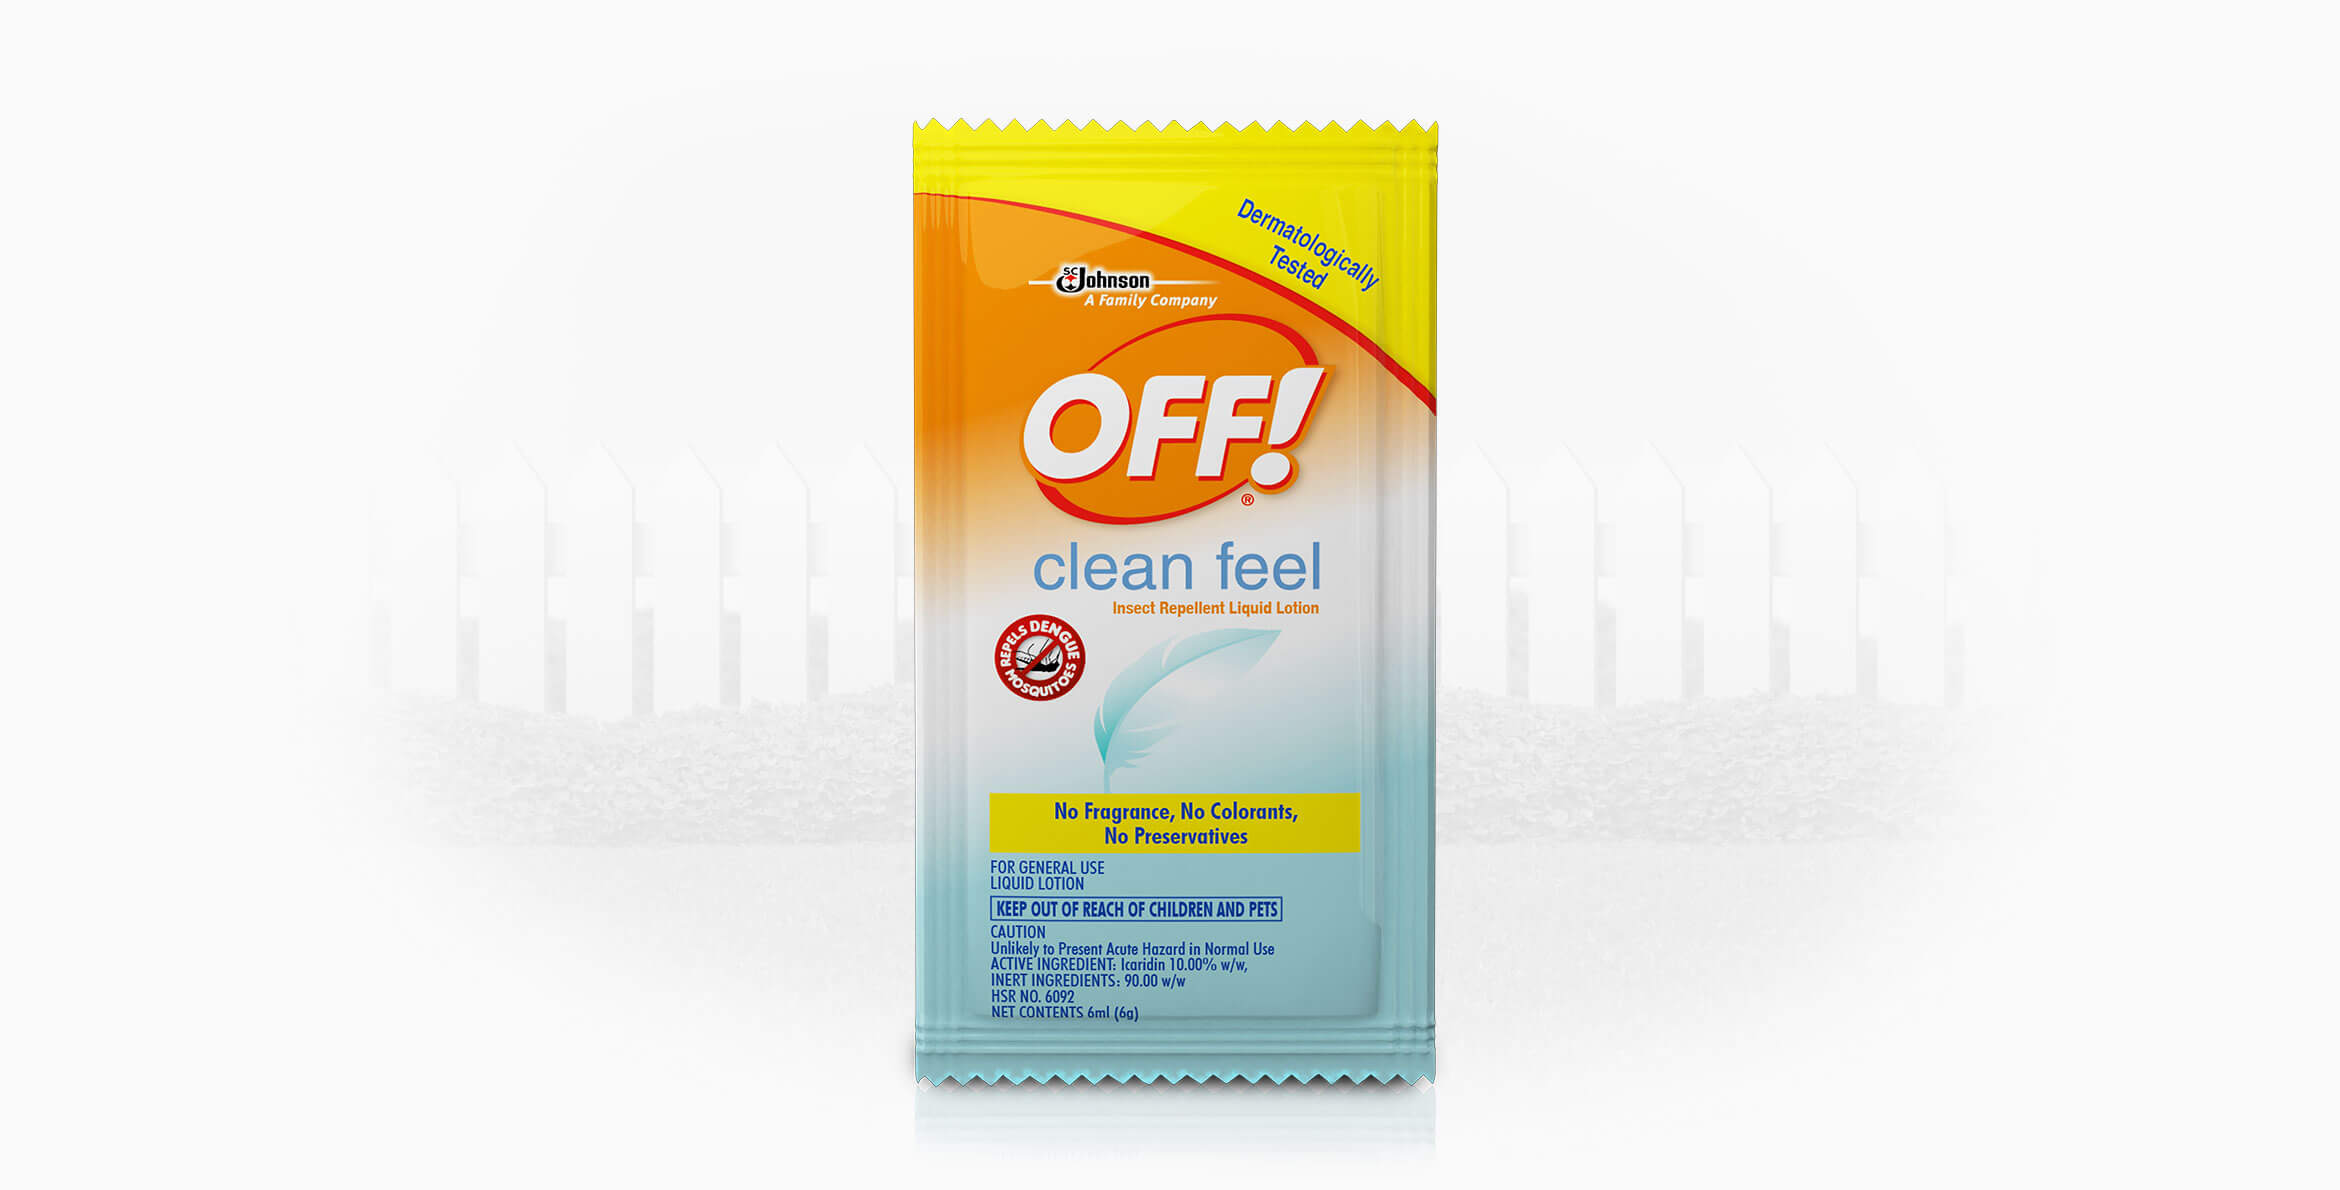 OFF!® Clean Feel Insect Repellent Lotion